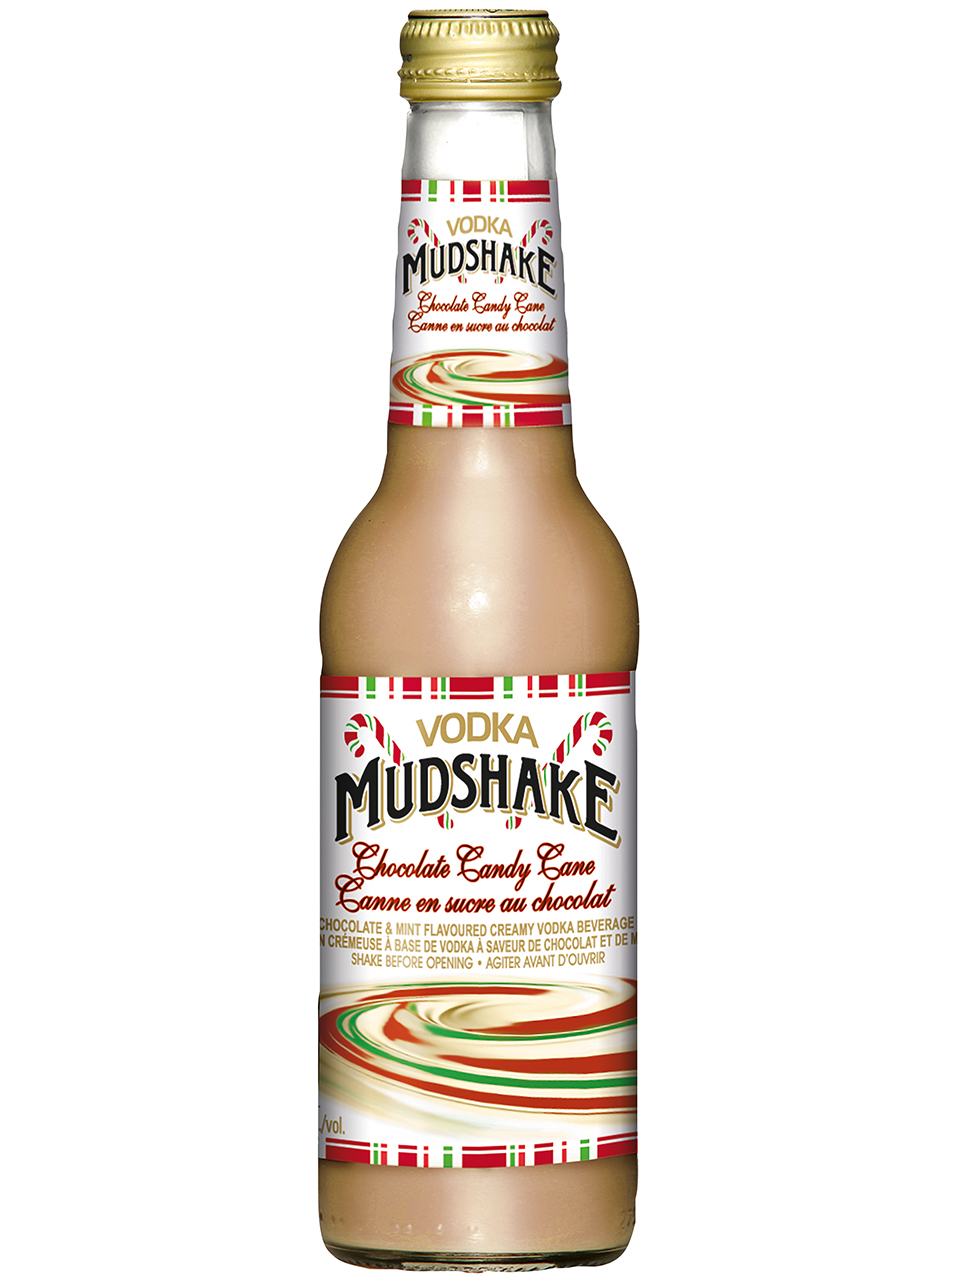 Vodka Mudshake Chocolate Candy Cane